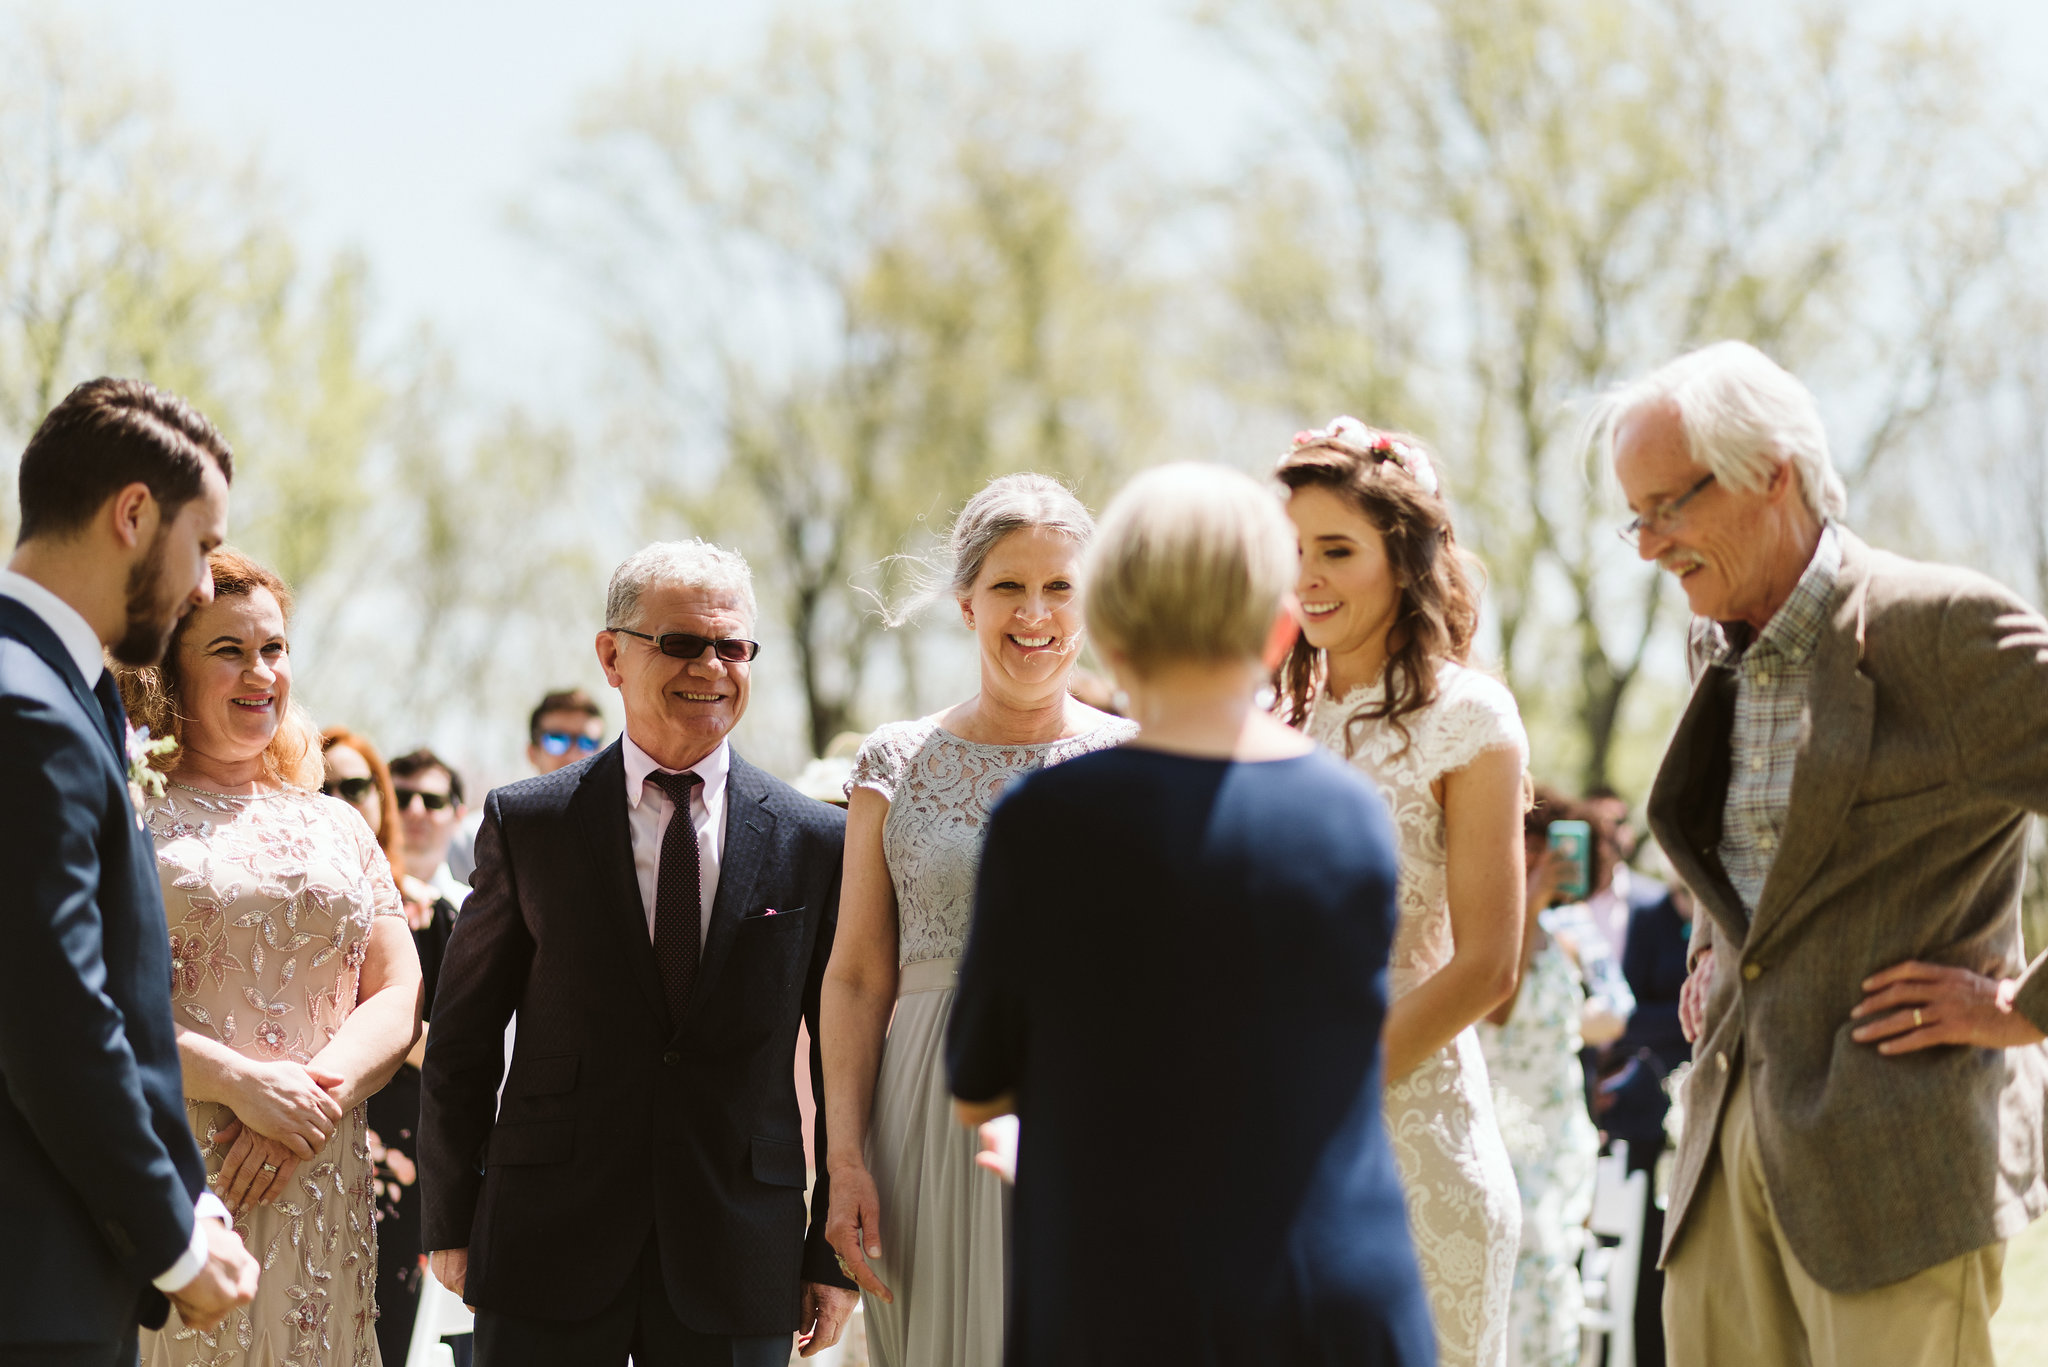 Spring Outdoor Wedding, Park, Baltimore Wedding Photographer, DIY, Classic, Upcycled, Garden Party, Romantic, Bride Reaching the End of the Aisle, Parents Smiling at Eachother, Suit Supply,